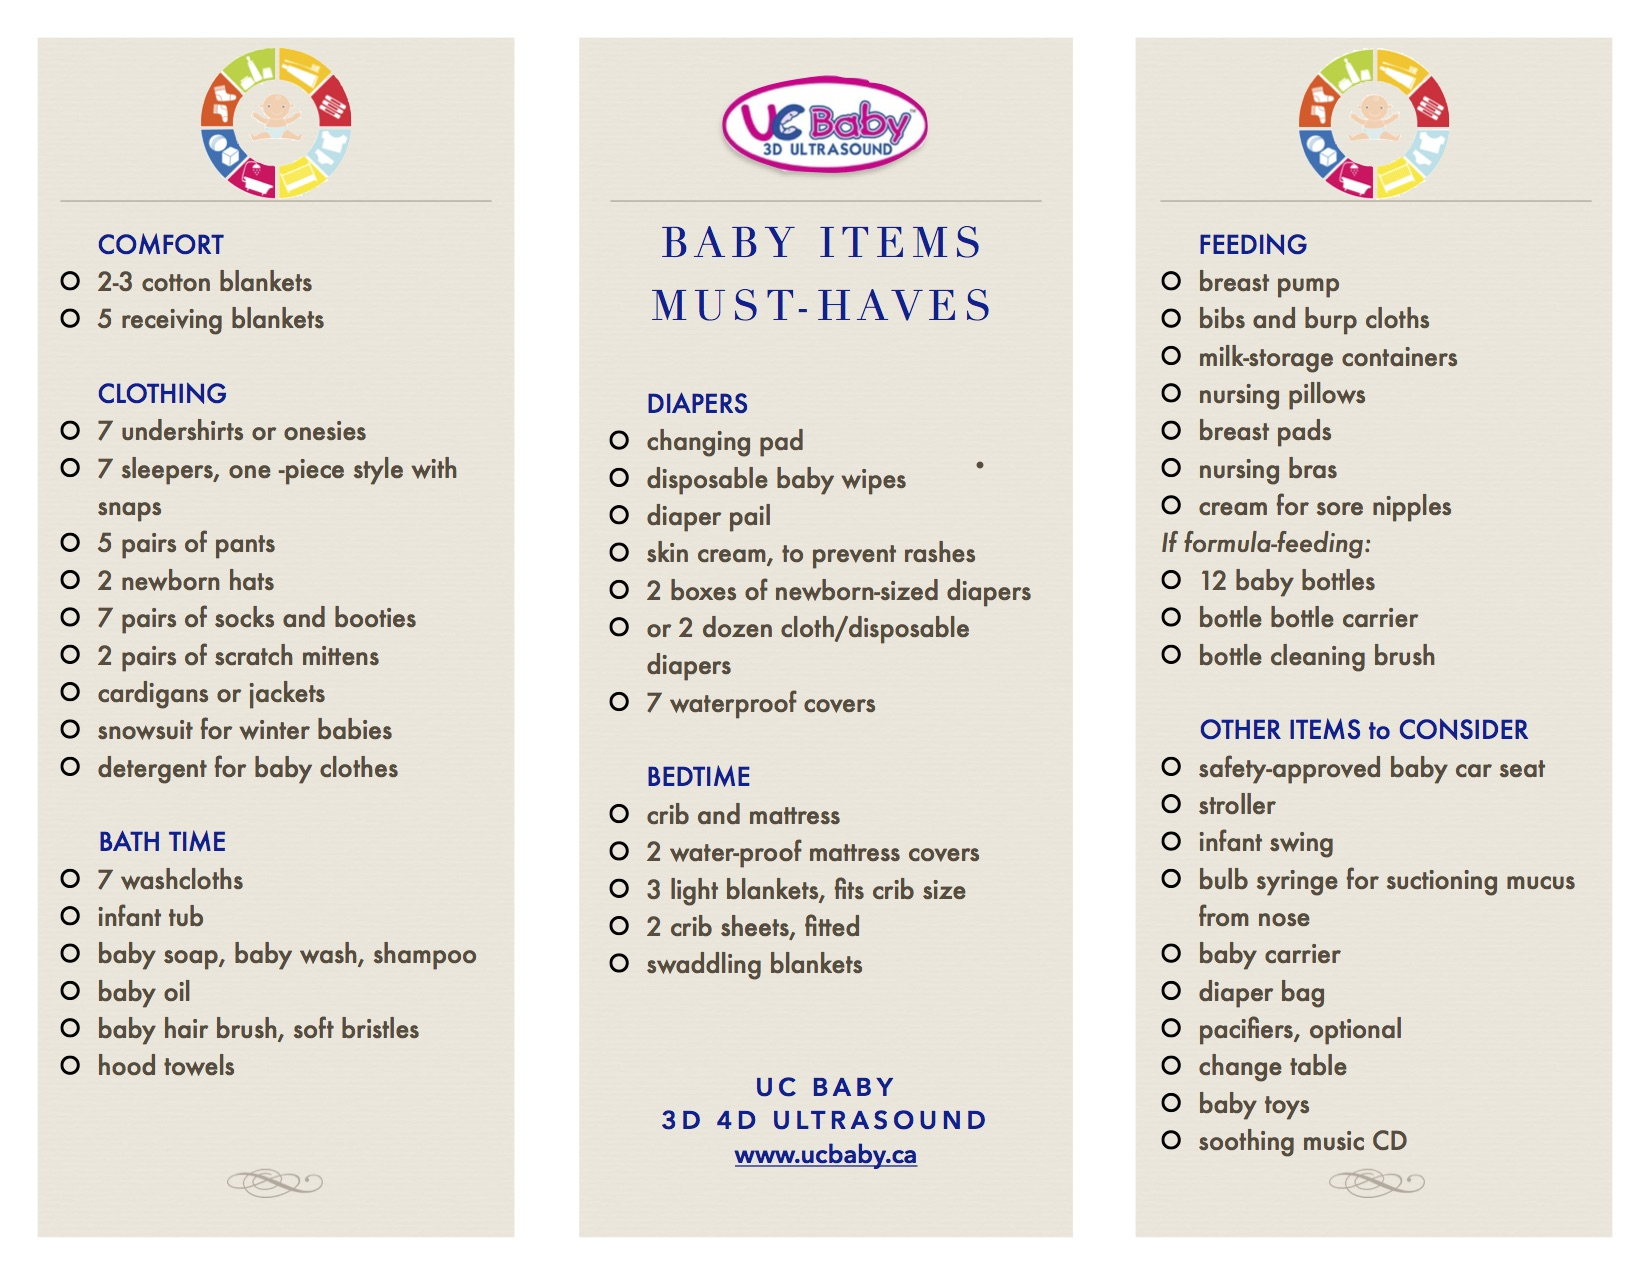 baby items must haves